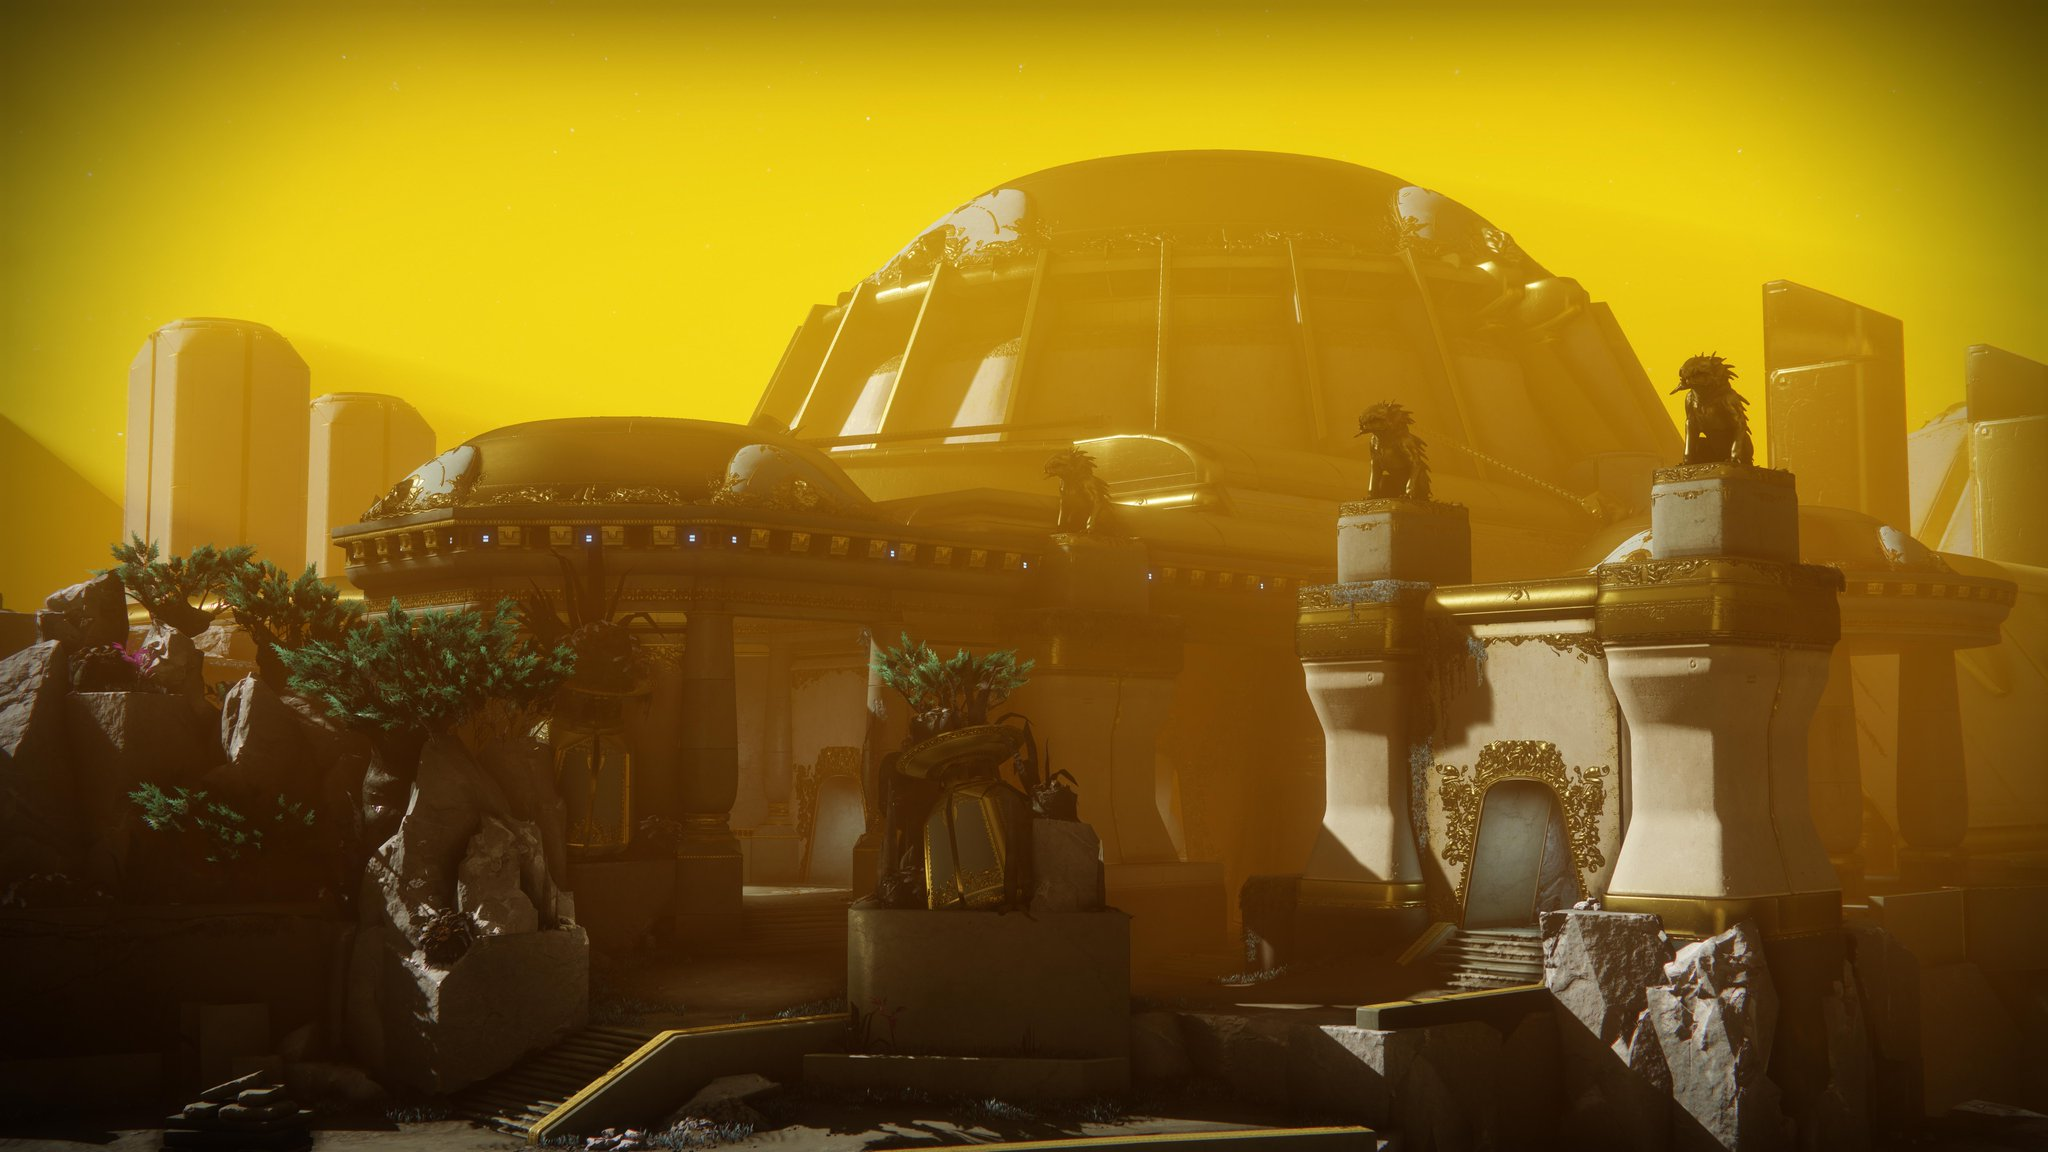 Destiny 2: Prestige difficulty for the Leviathan raid delayed